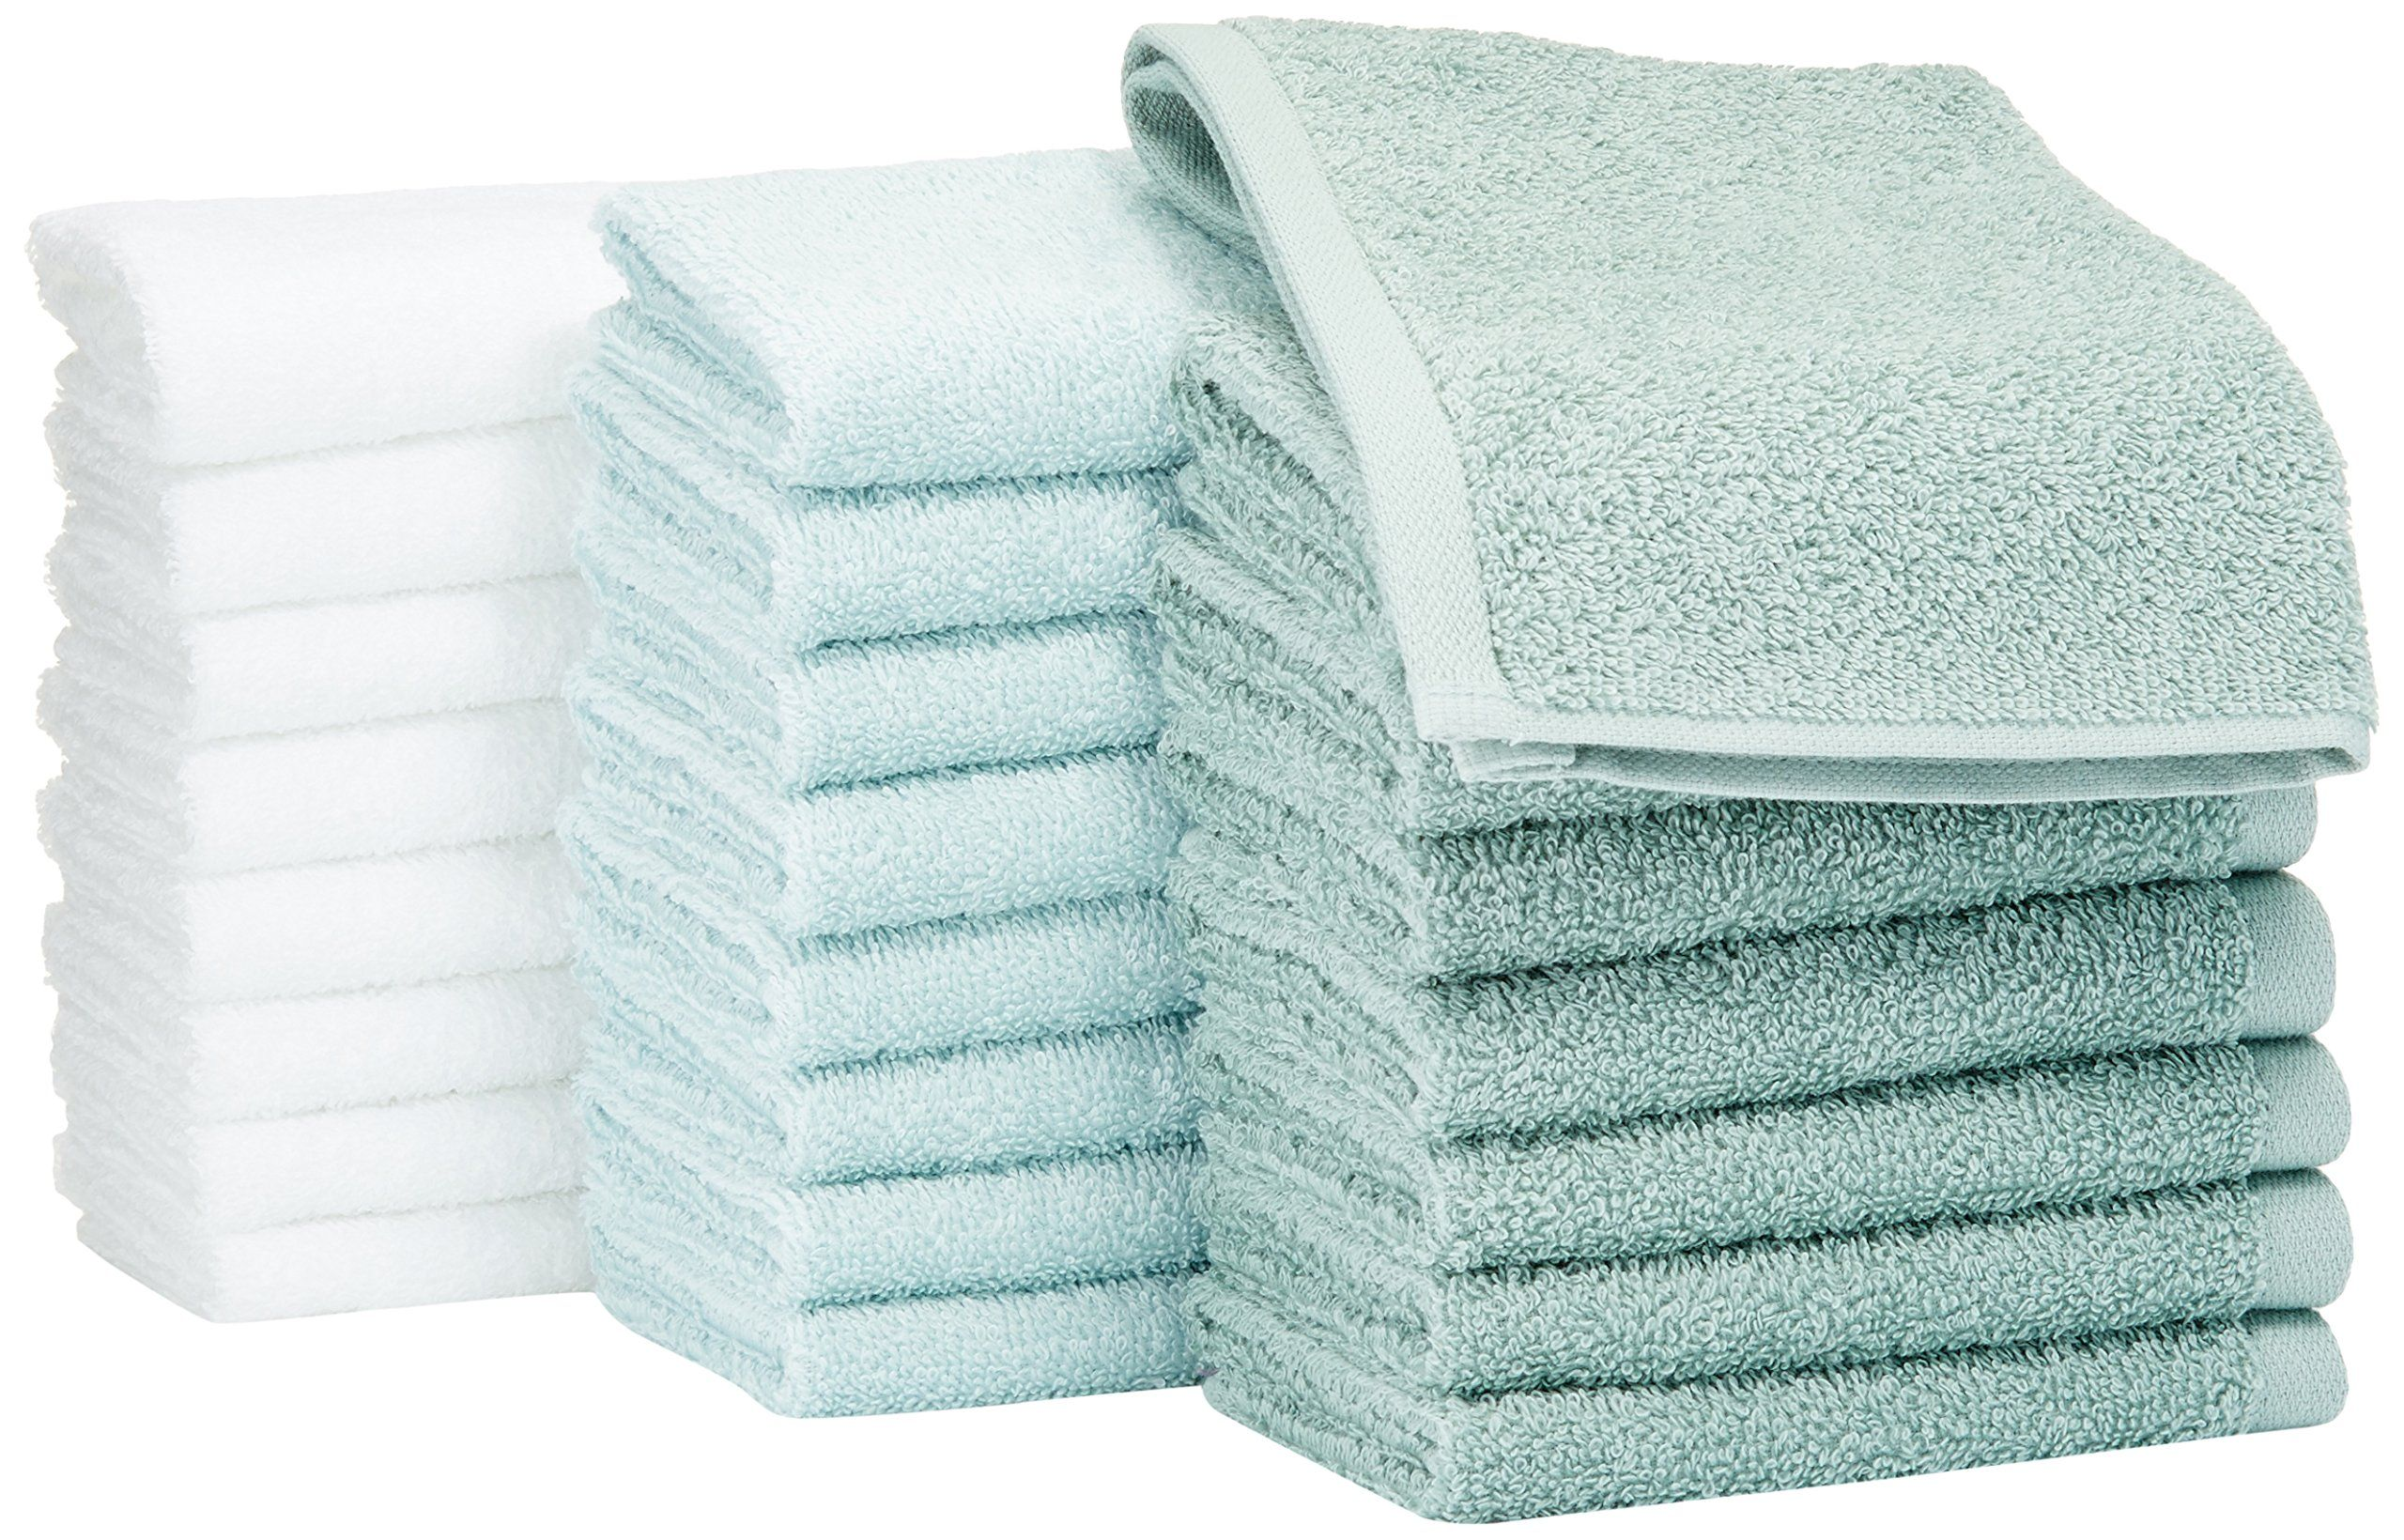 Amazonbasics Washcloth Pack Of 24 Multicolor Seafoam Green Ice